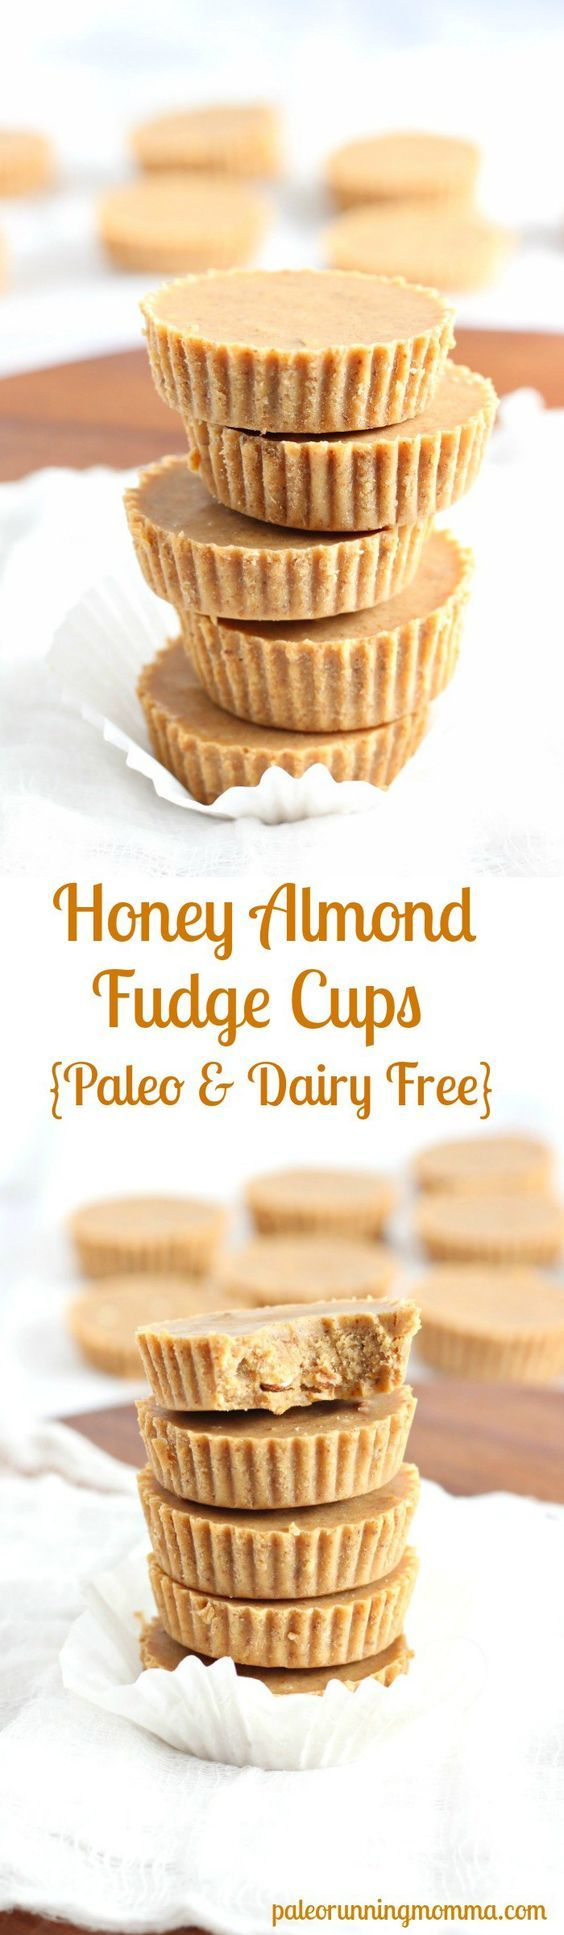 Healthy and super easy 5 ingredient no cook Honey Almond Fudge Cups! Gluten free Paleo dairy free seriously amazing treat that you won't believe is actually healthy! paleorunningmomma...